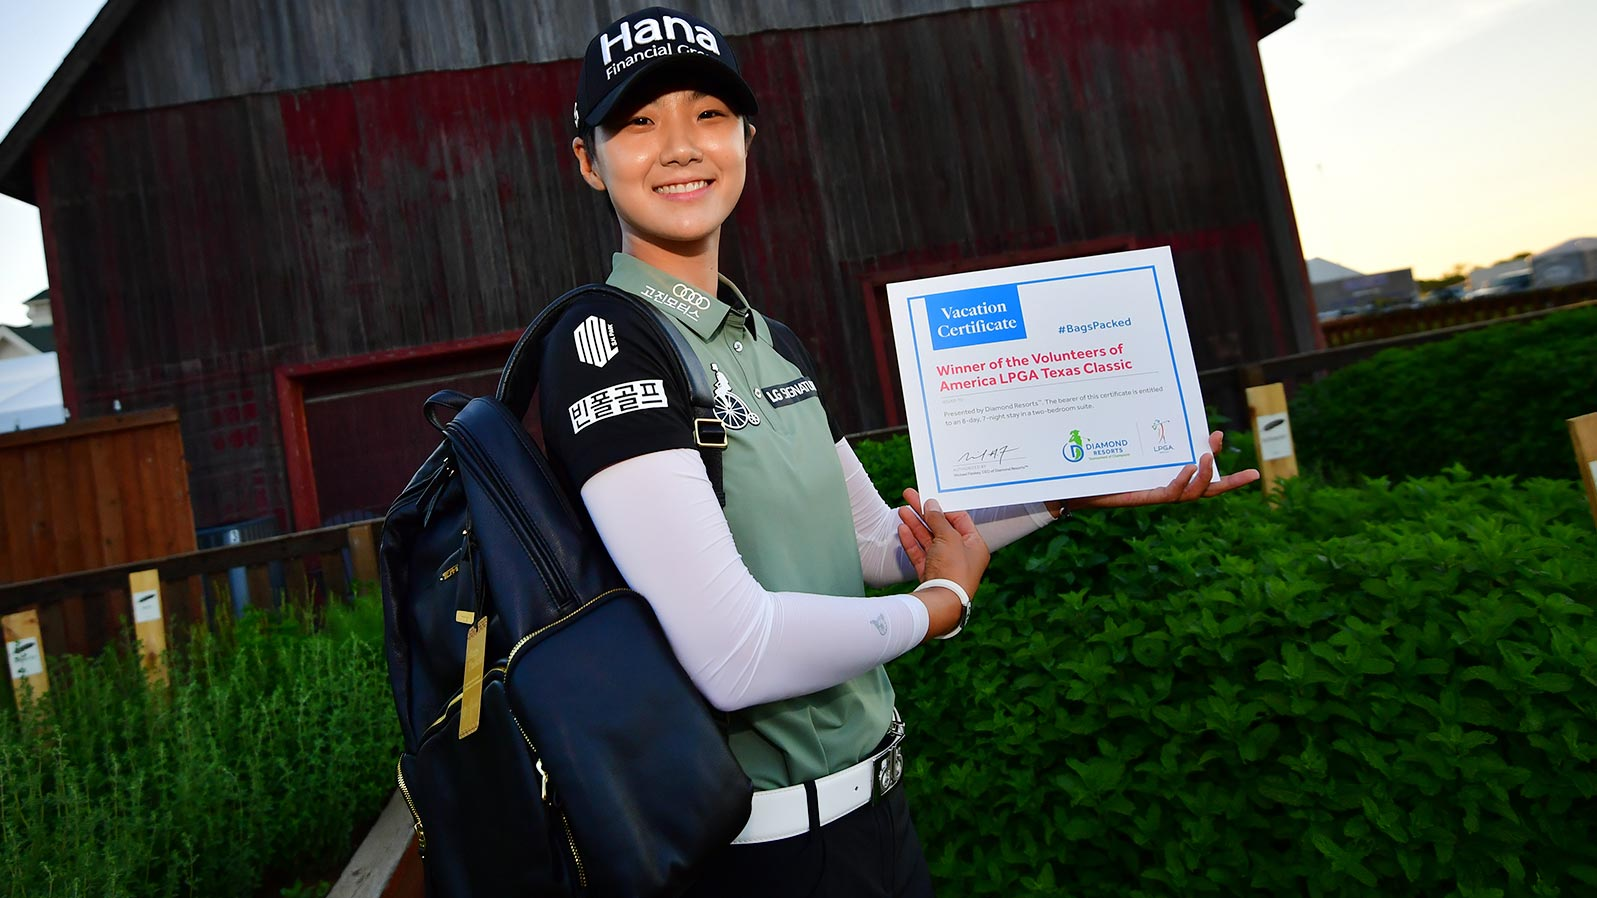 Sung Hyun Park has her #BagsPacked for the 2019 Diamond Resorts Tournament of Champions after her victory at the VOA Texas Classic